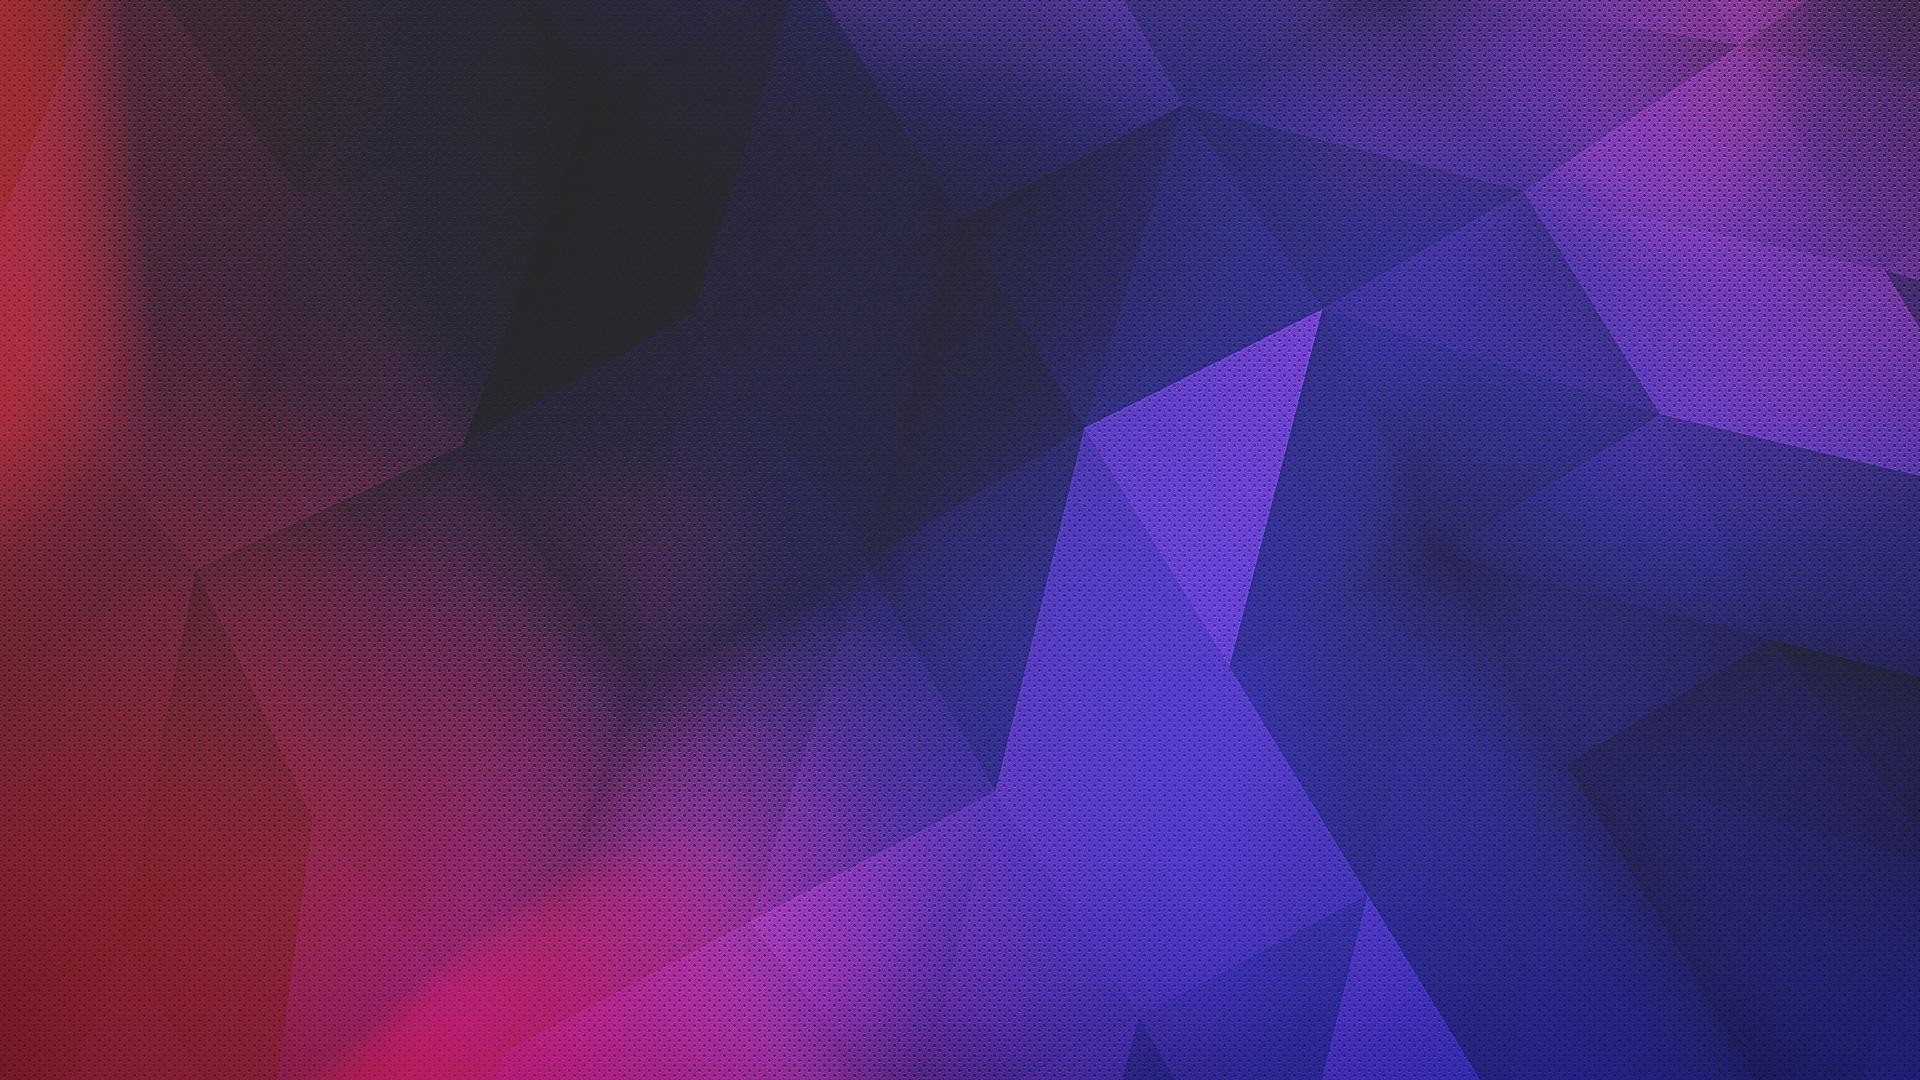 purple, red, abstract, digital art, low poly, blue, artwork .